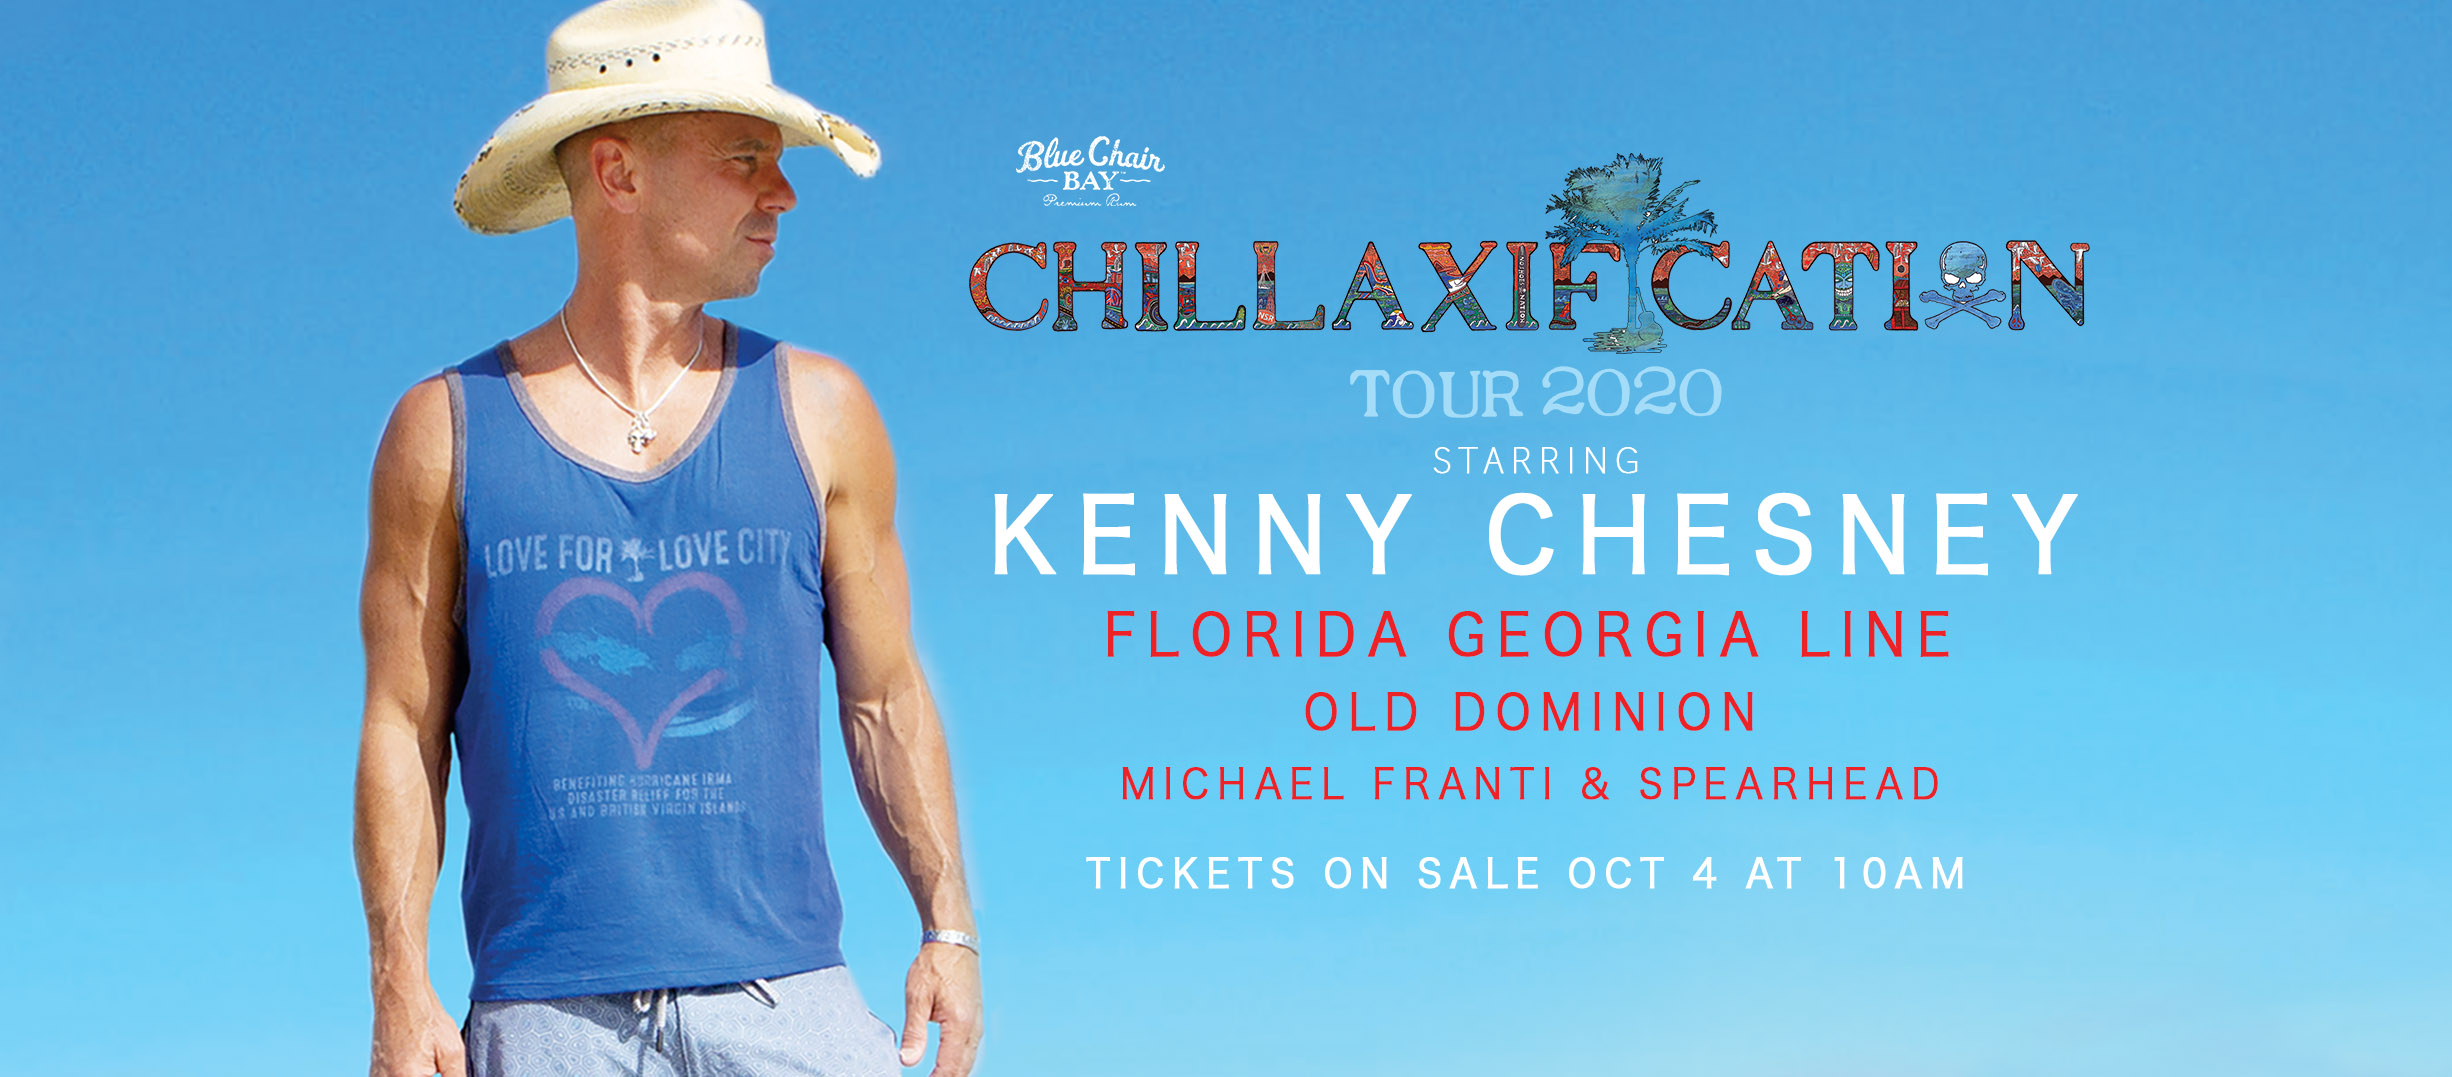 kenny chesney chillaxification 2020 tour